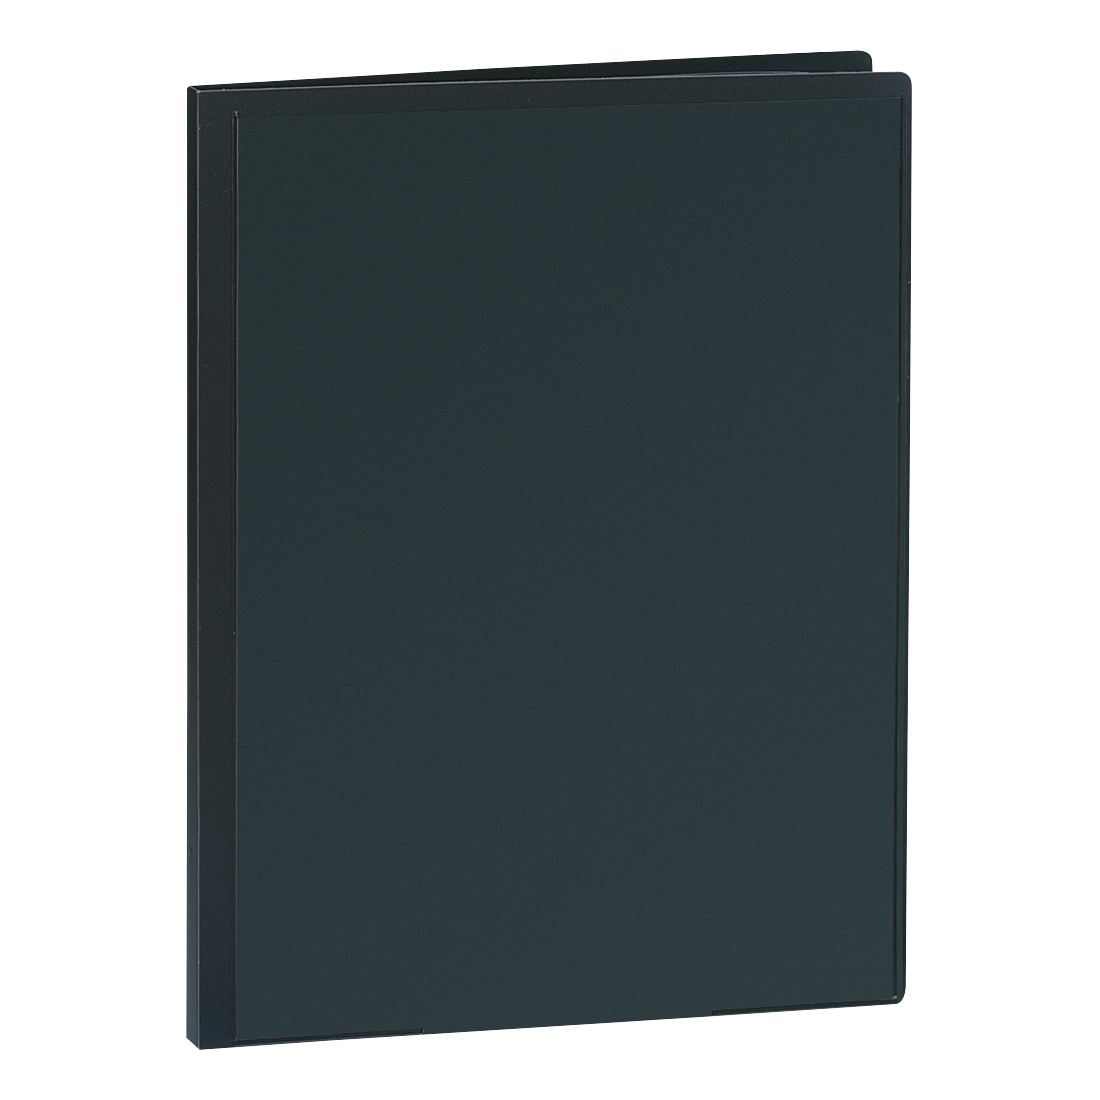 5 Star Office Display Book Rigid Cover Personalisable Polypropylene 30 Pockets Black